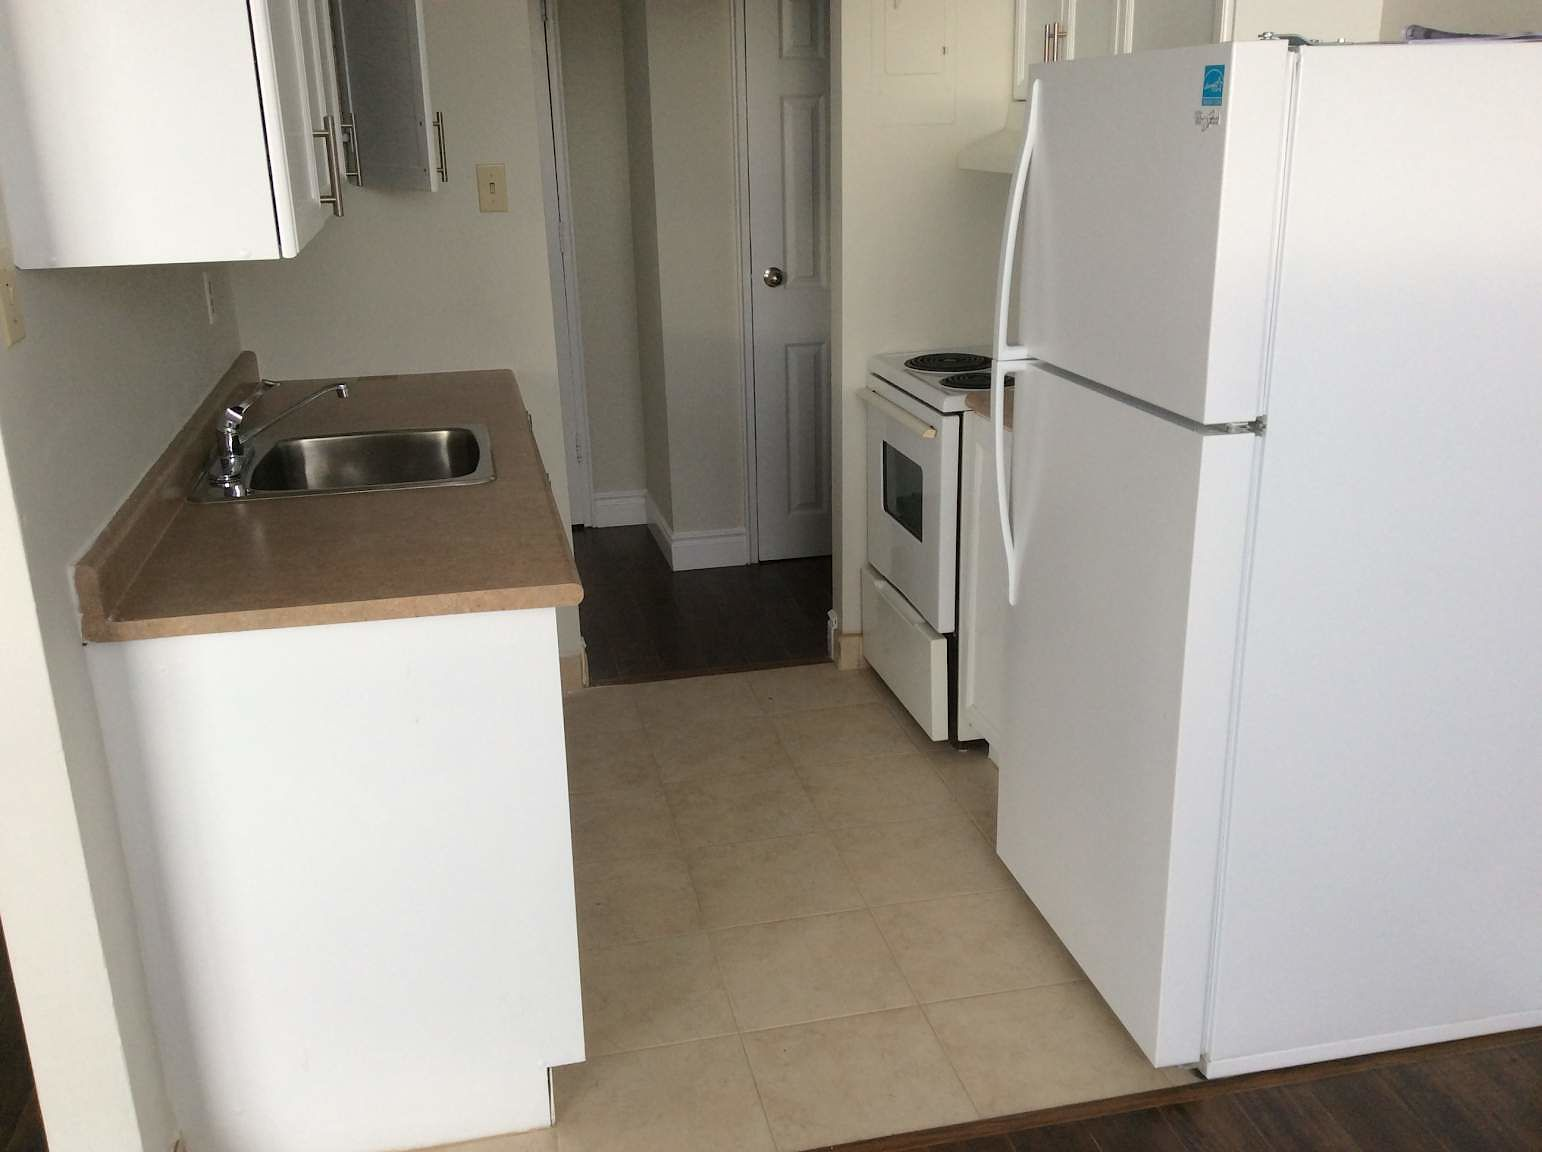 London Apartment For Rent | 135 Connaught | ID 321231 ...